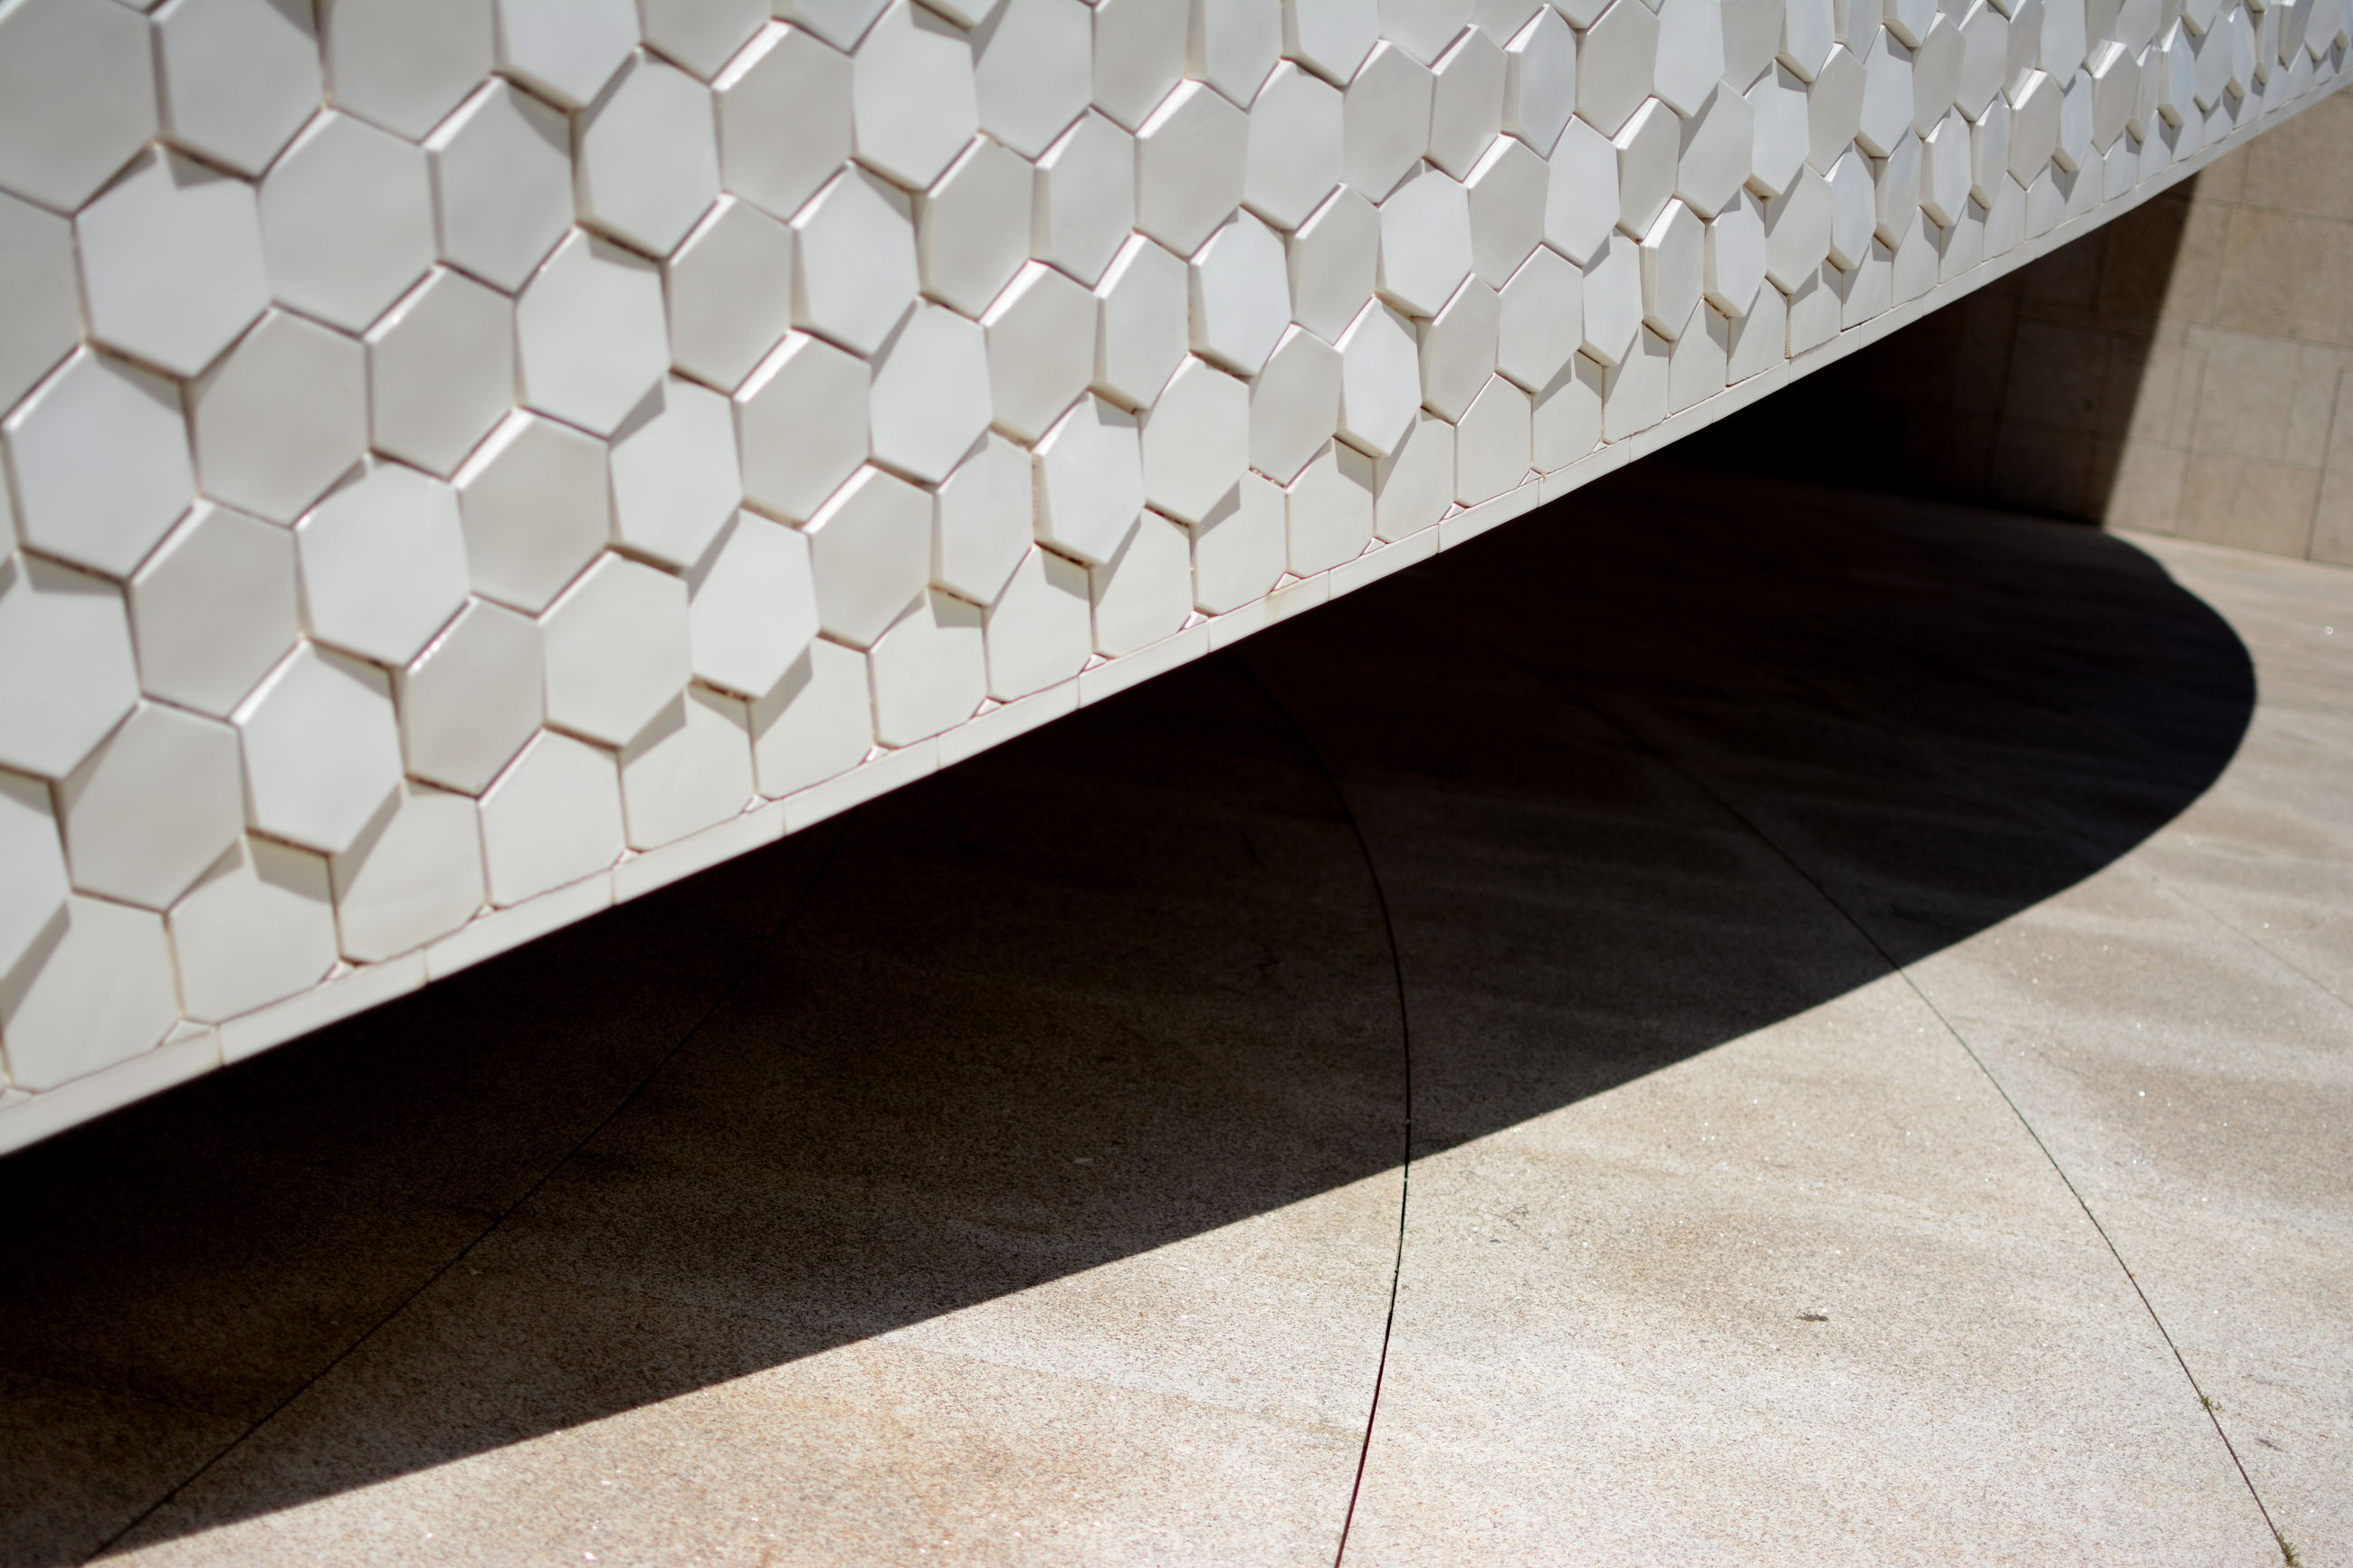 pattern, indoors, tiled floor, shadow, high angle view, flooring, sunlight, built structure, close-up, wall - building feature, no people, design, architecture, day, empty, tile, modern, repetition, geometric shape, shape